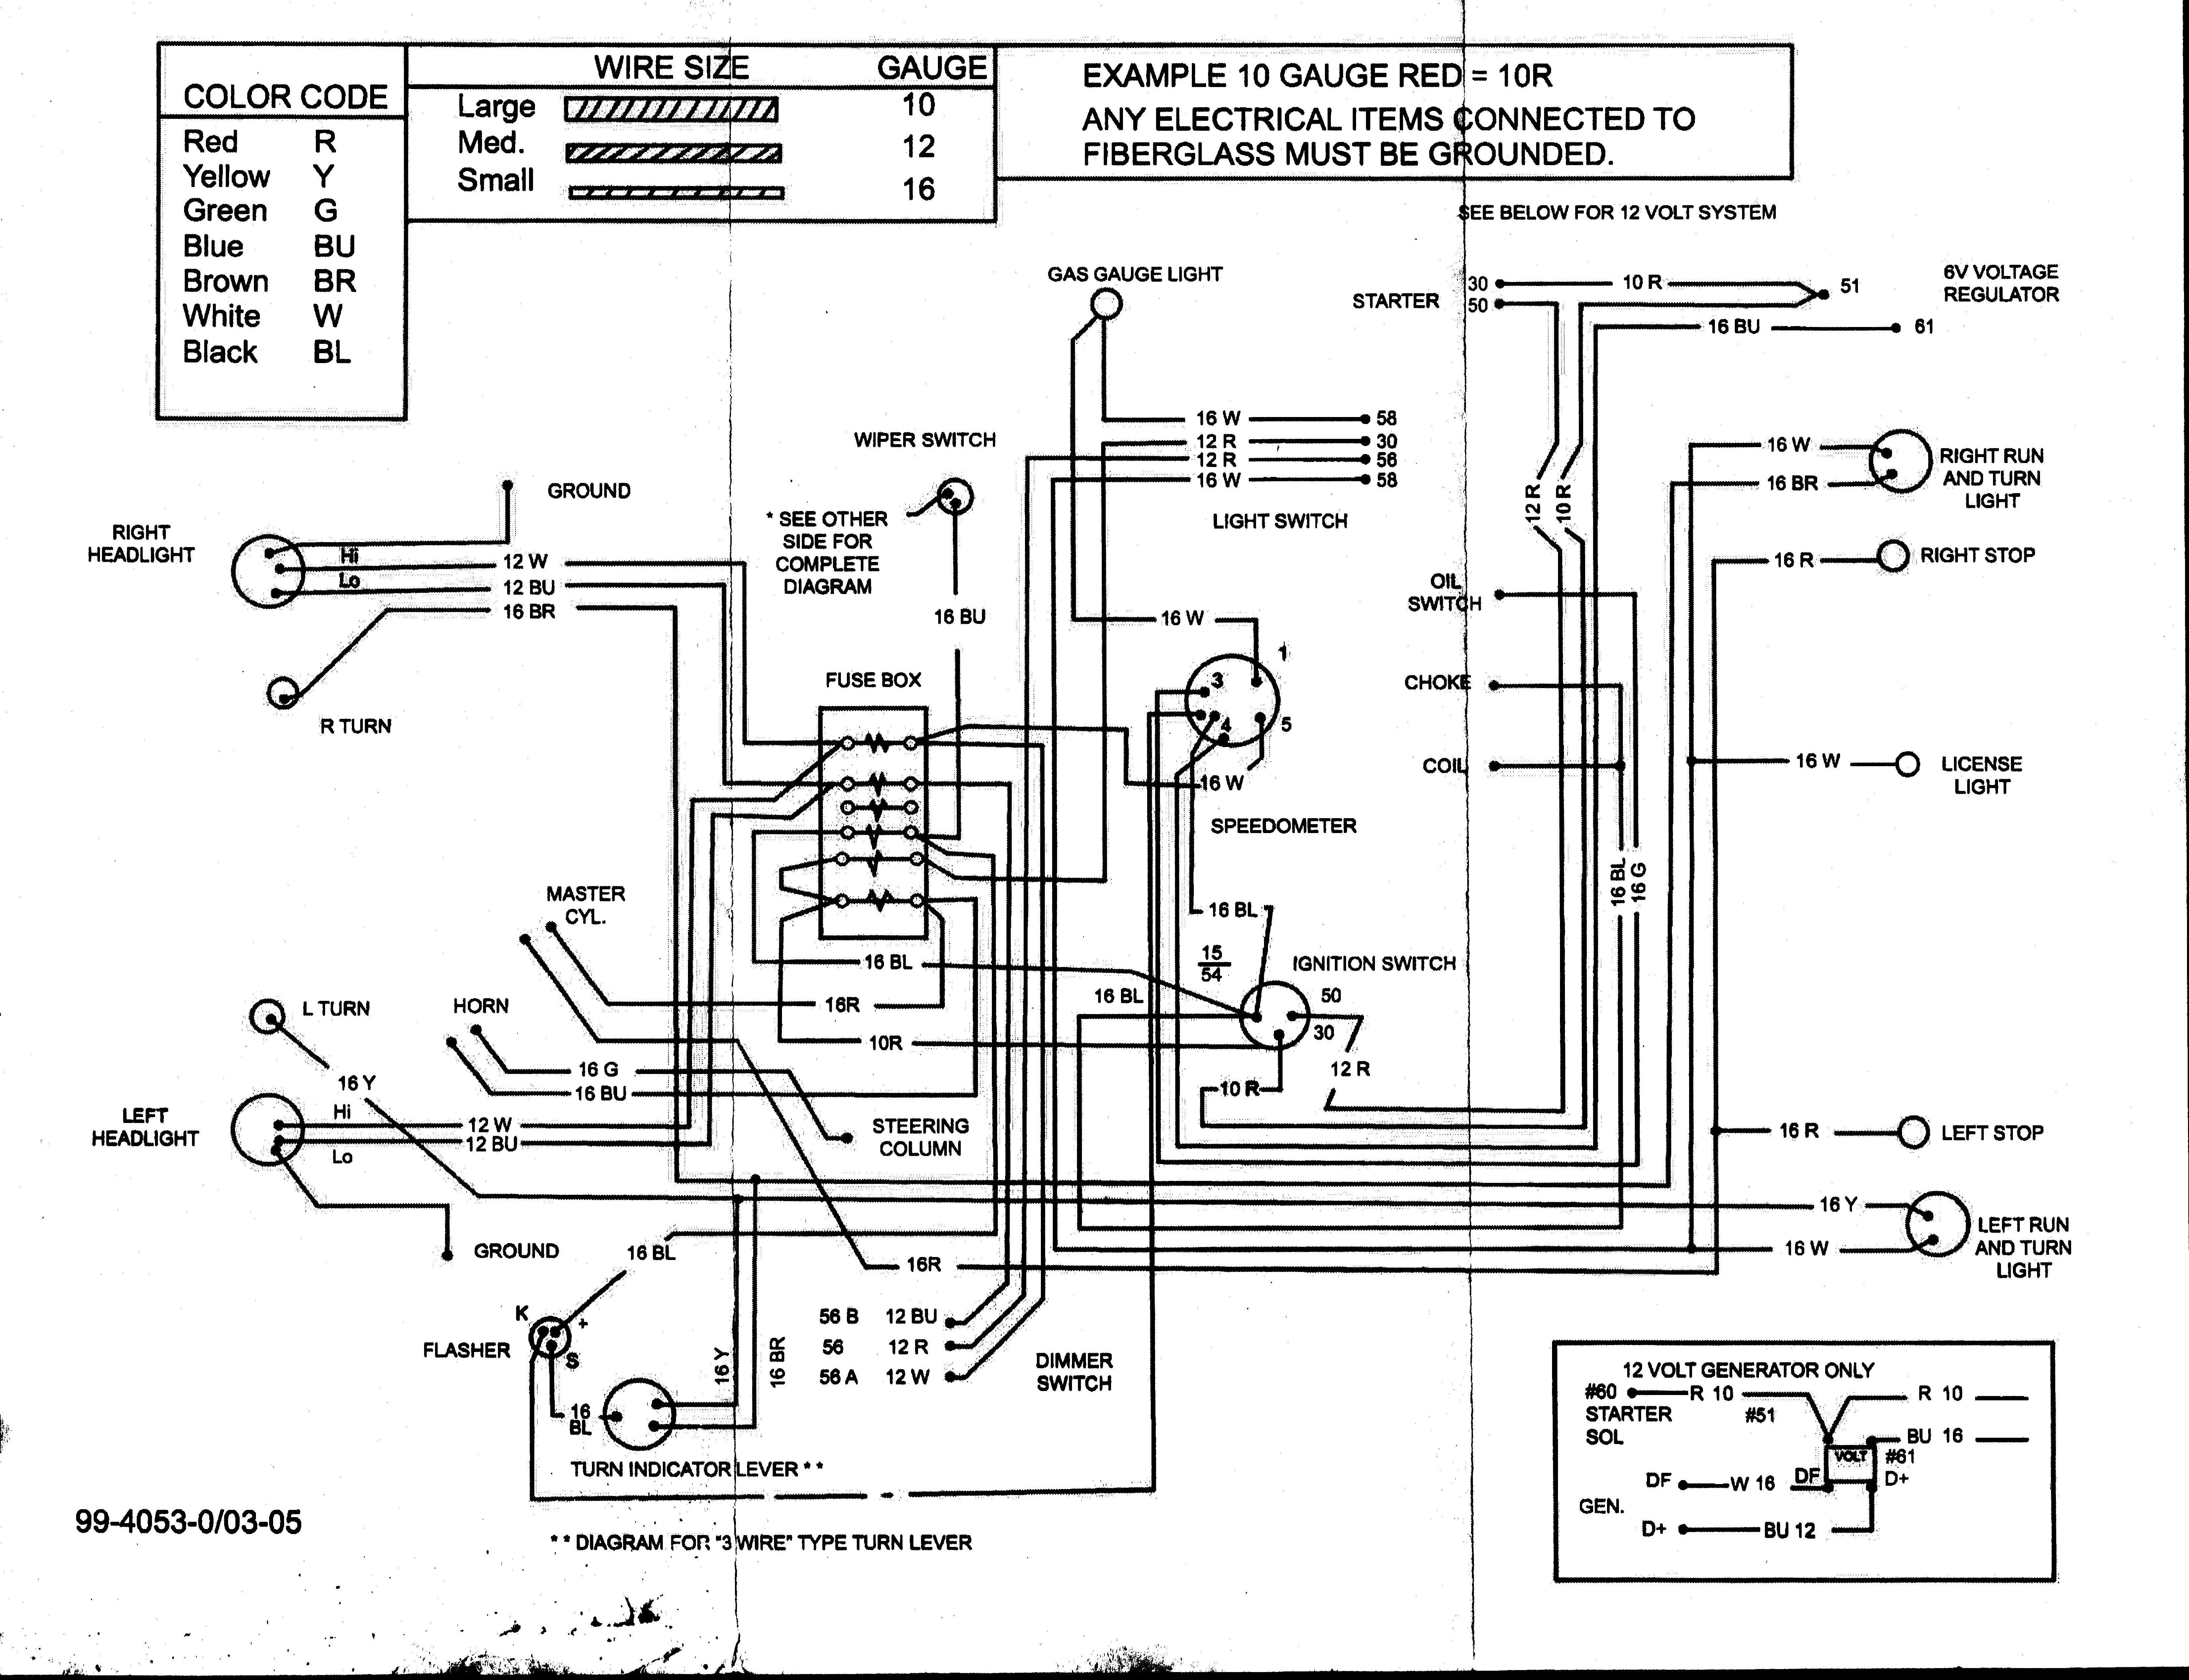 Empi 9466 Wire Loom Wiring Diagram Instructions Page 1 In 2020 Diagram Trailer Wiring Diagram Electrical Wiring Diagram